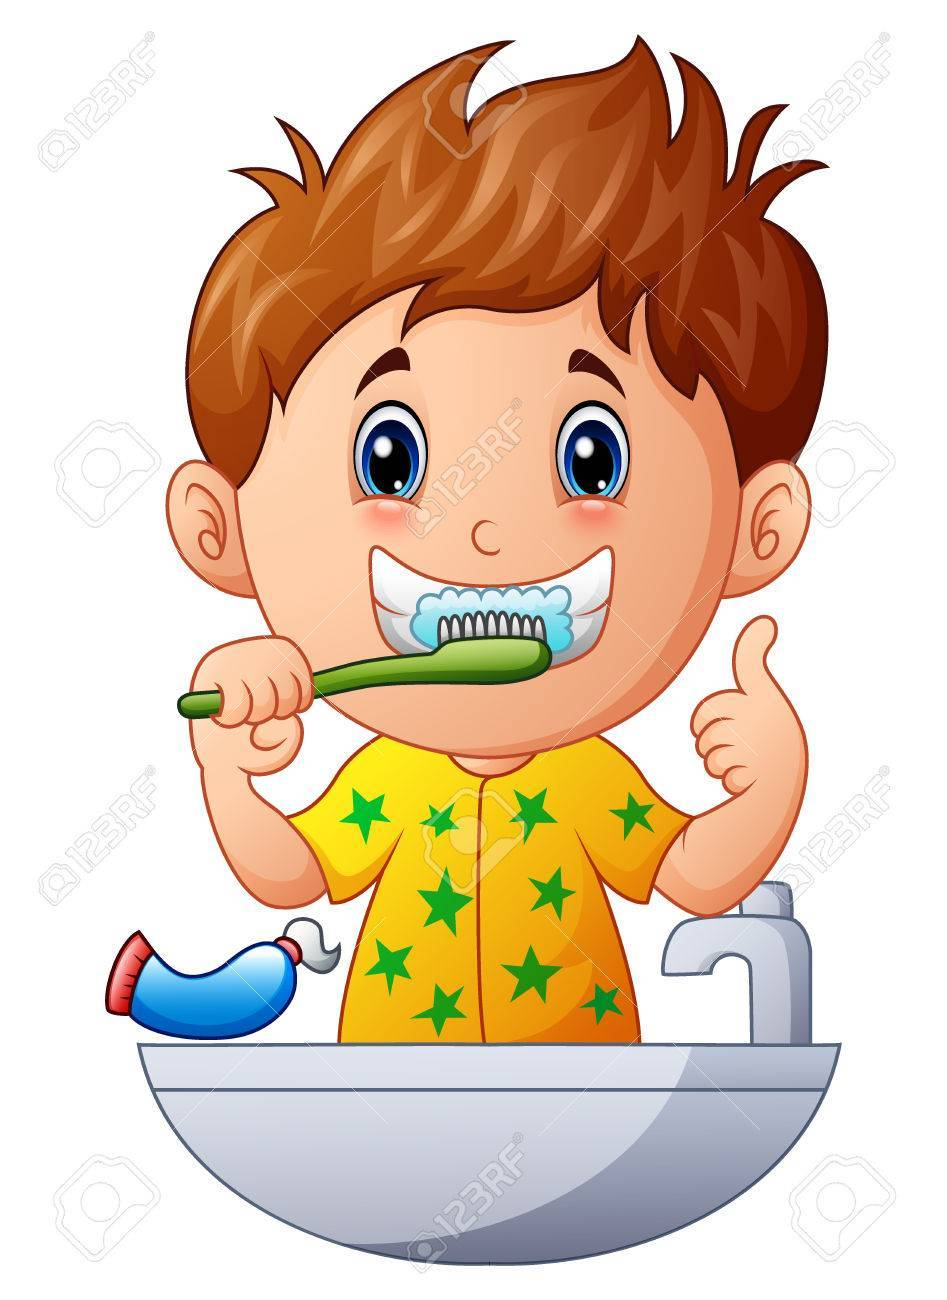 Brushing teeth clipart 2 » Clipart Portal.